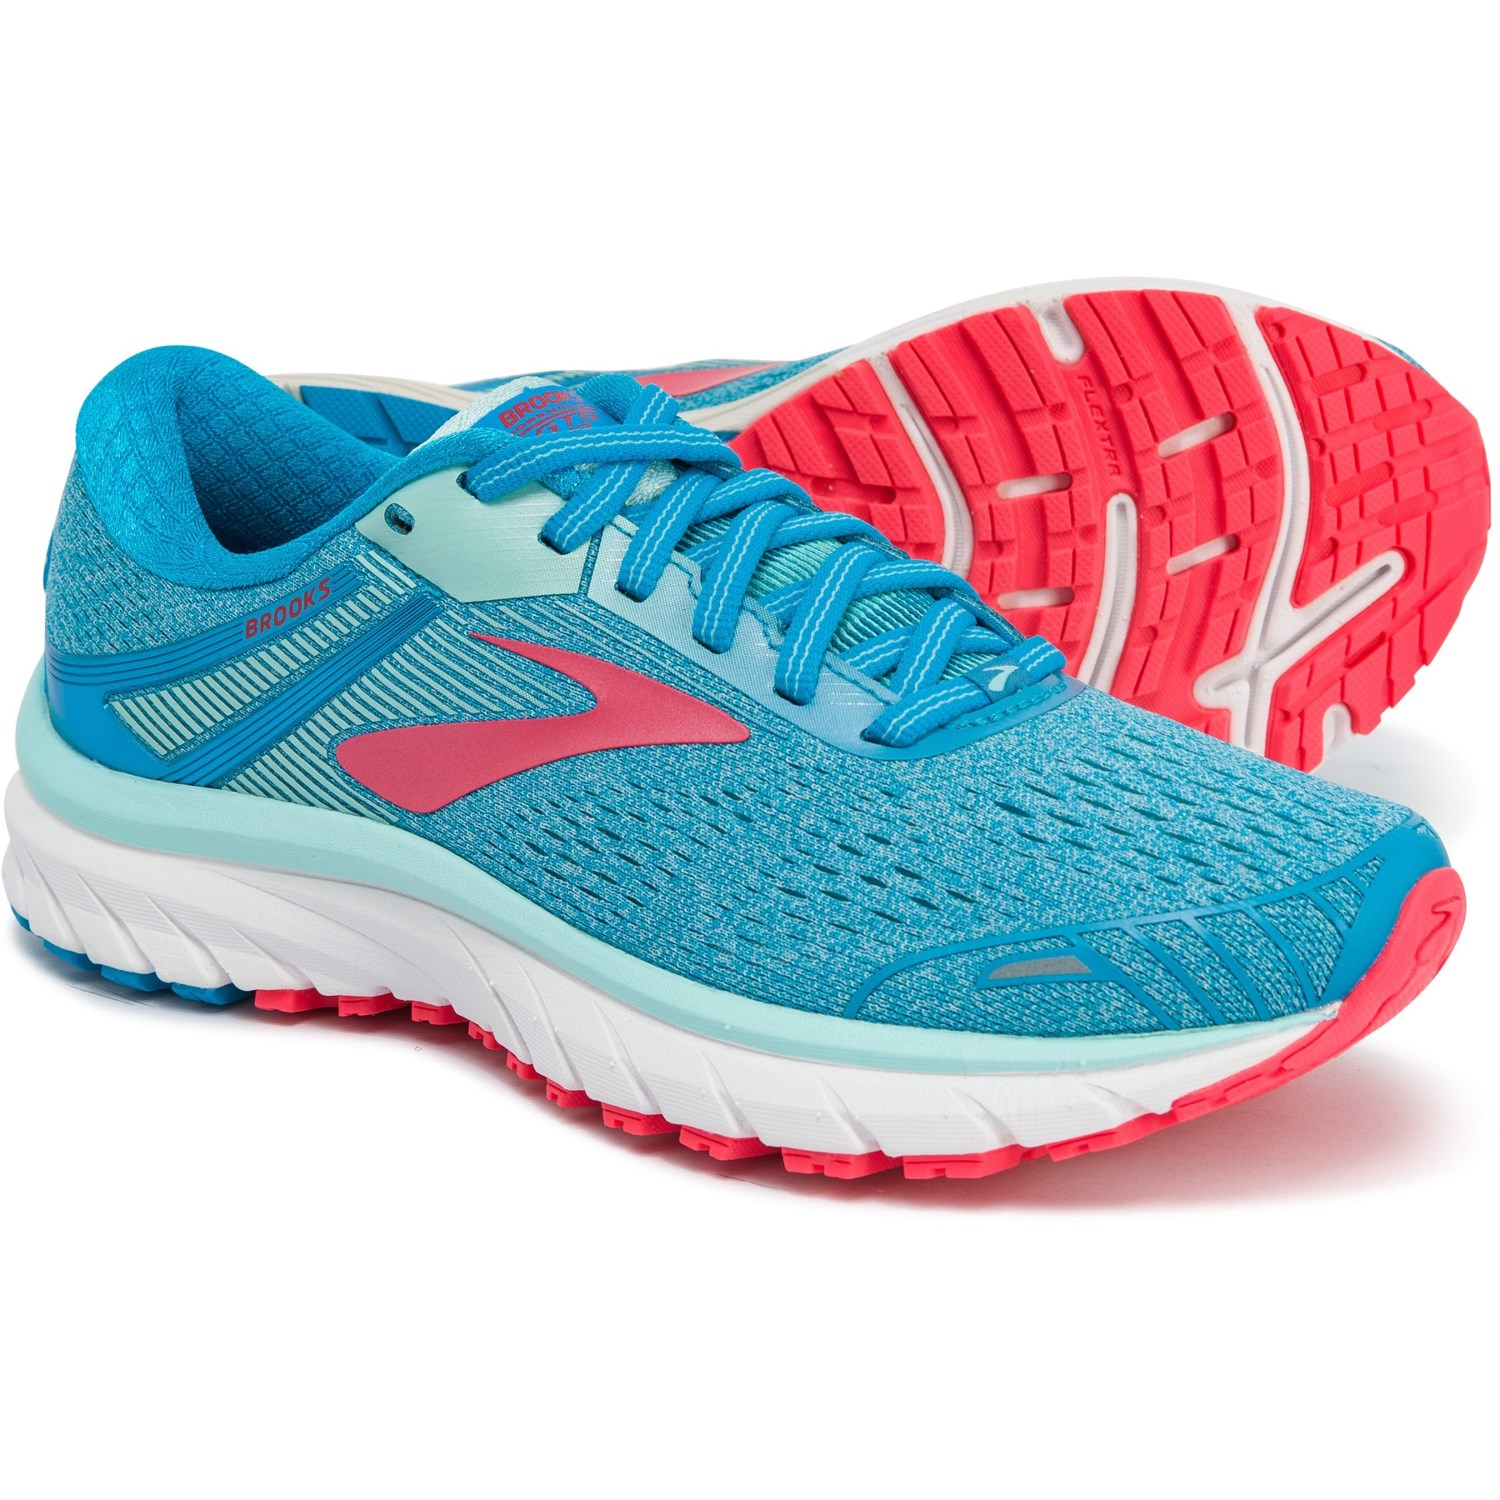 7f6d59df04c55 Brooks Adrenaline GTS 18 Running Shoes (For Women) in Blue Mint Pink